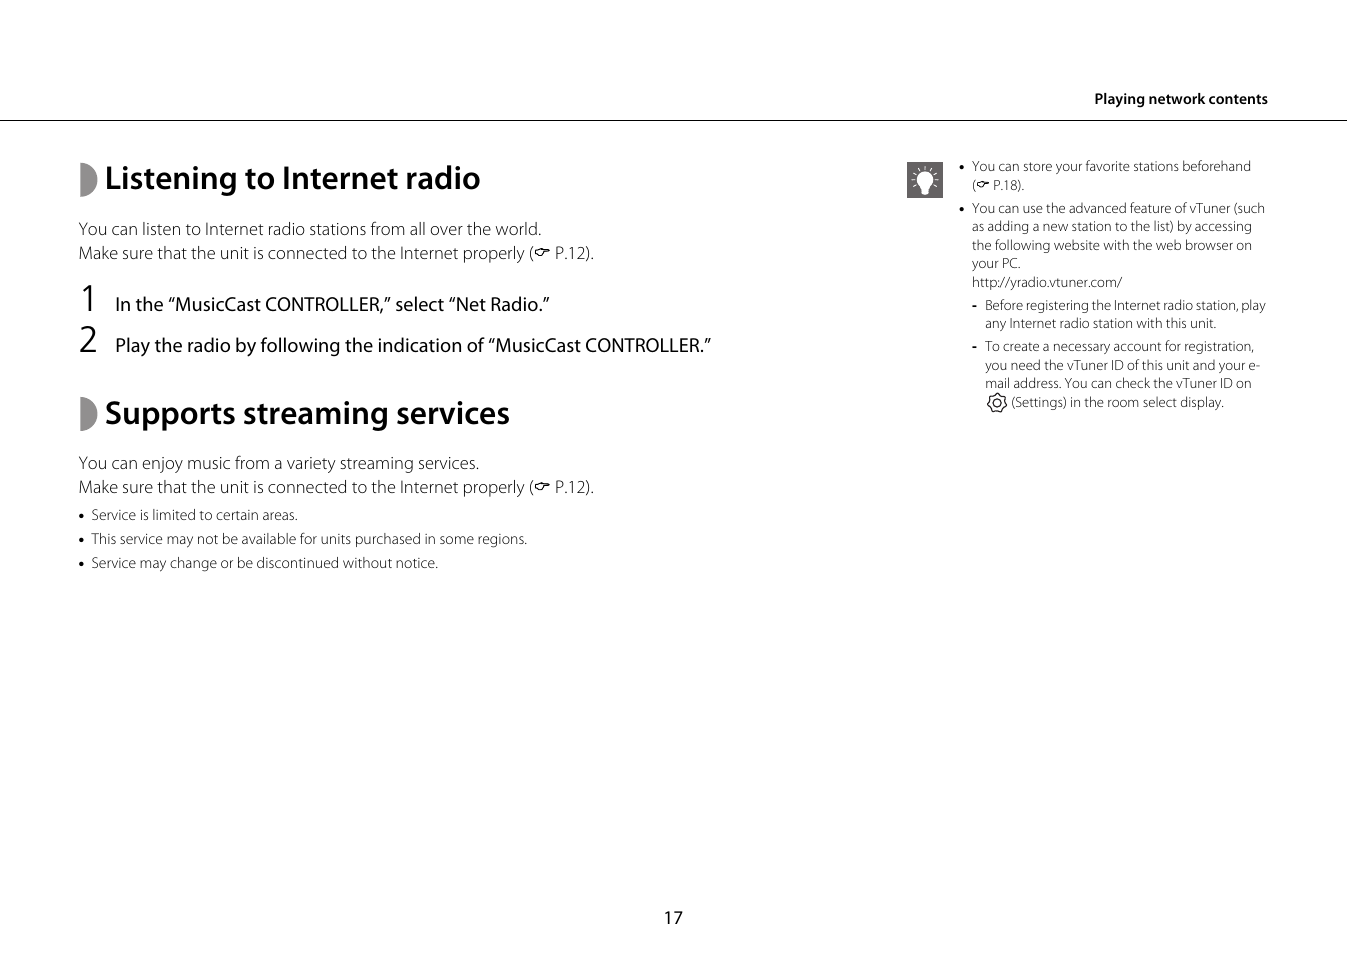 Listening to internet radio, Supports streaming services